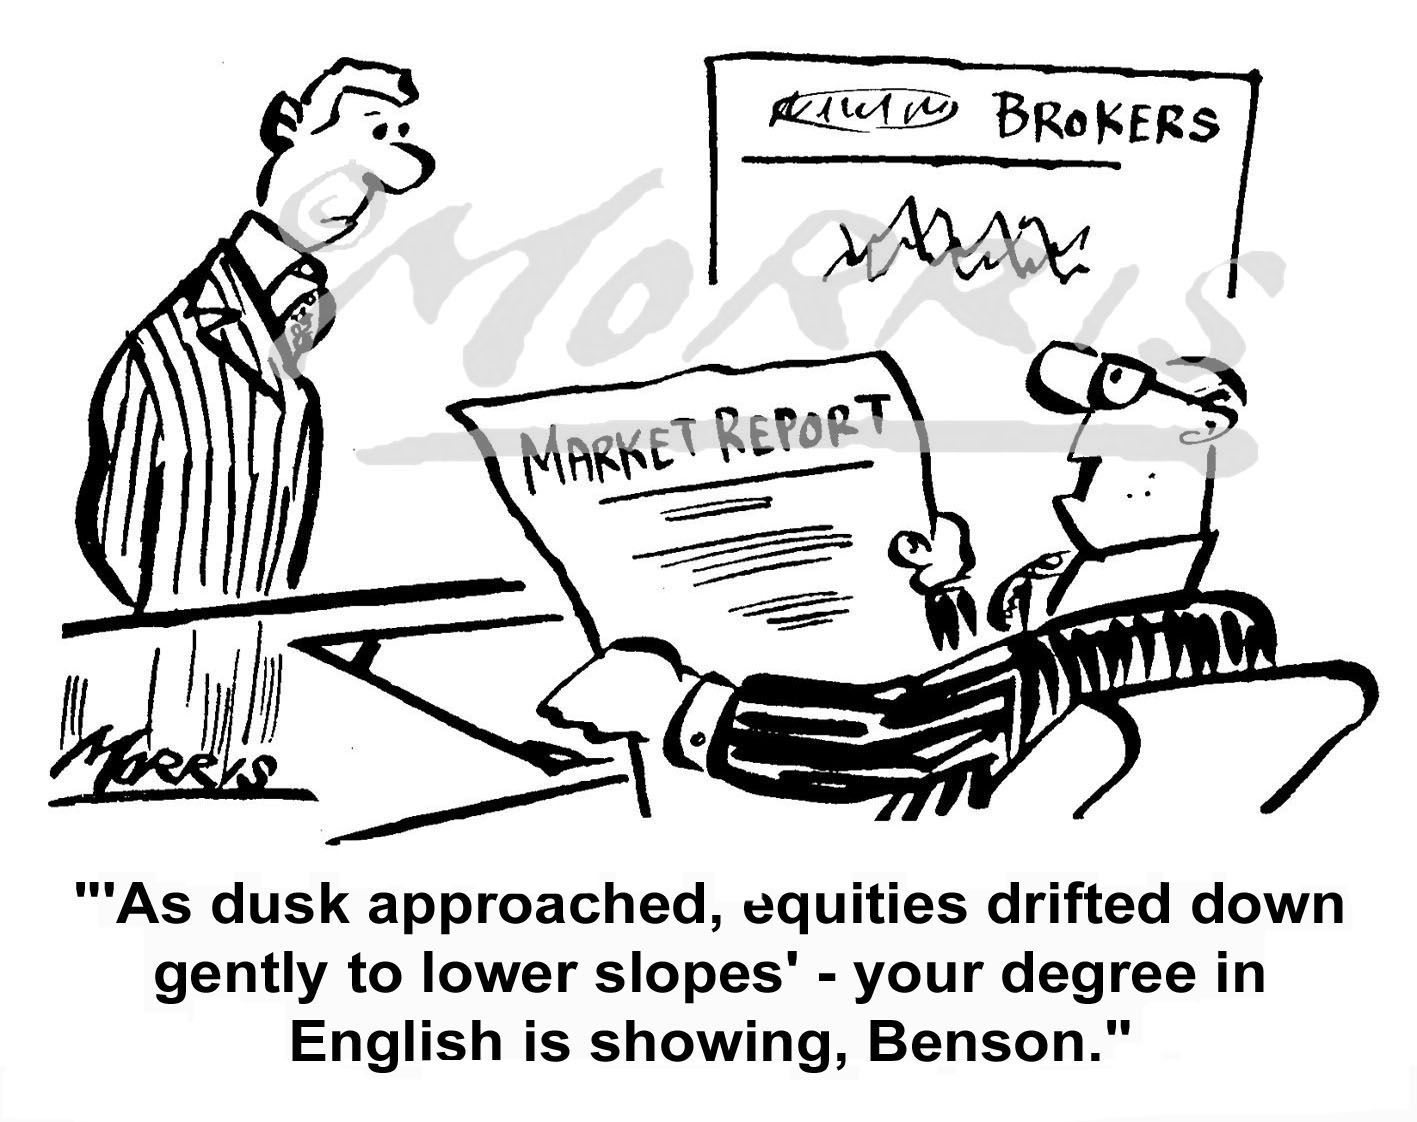 Broker market report cartoon Ref: 0122bw